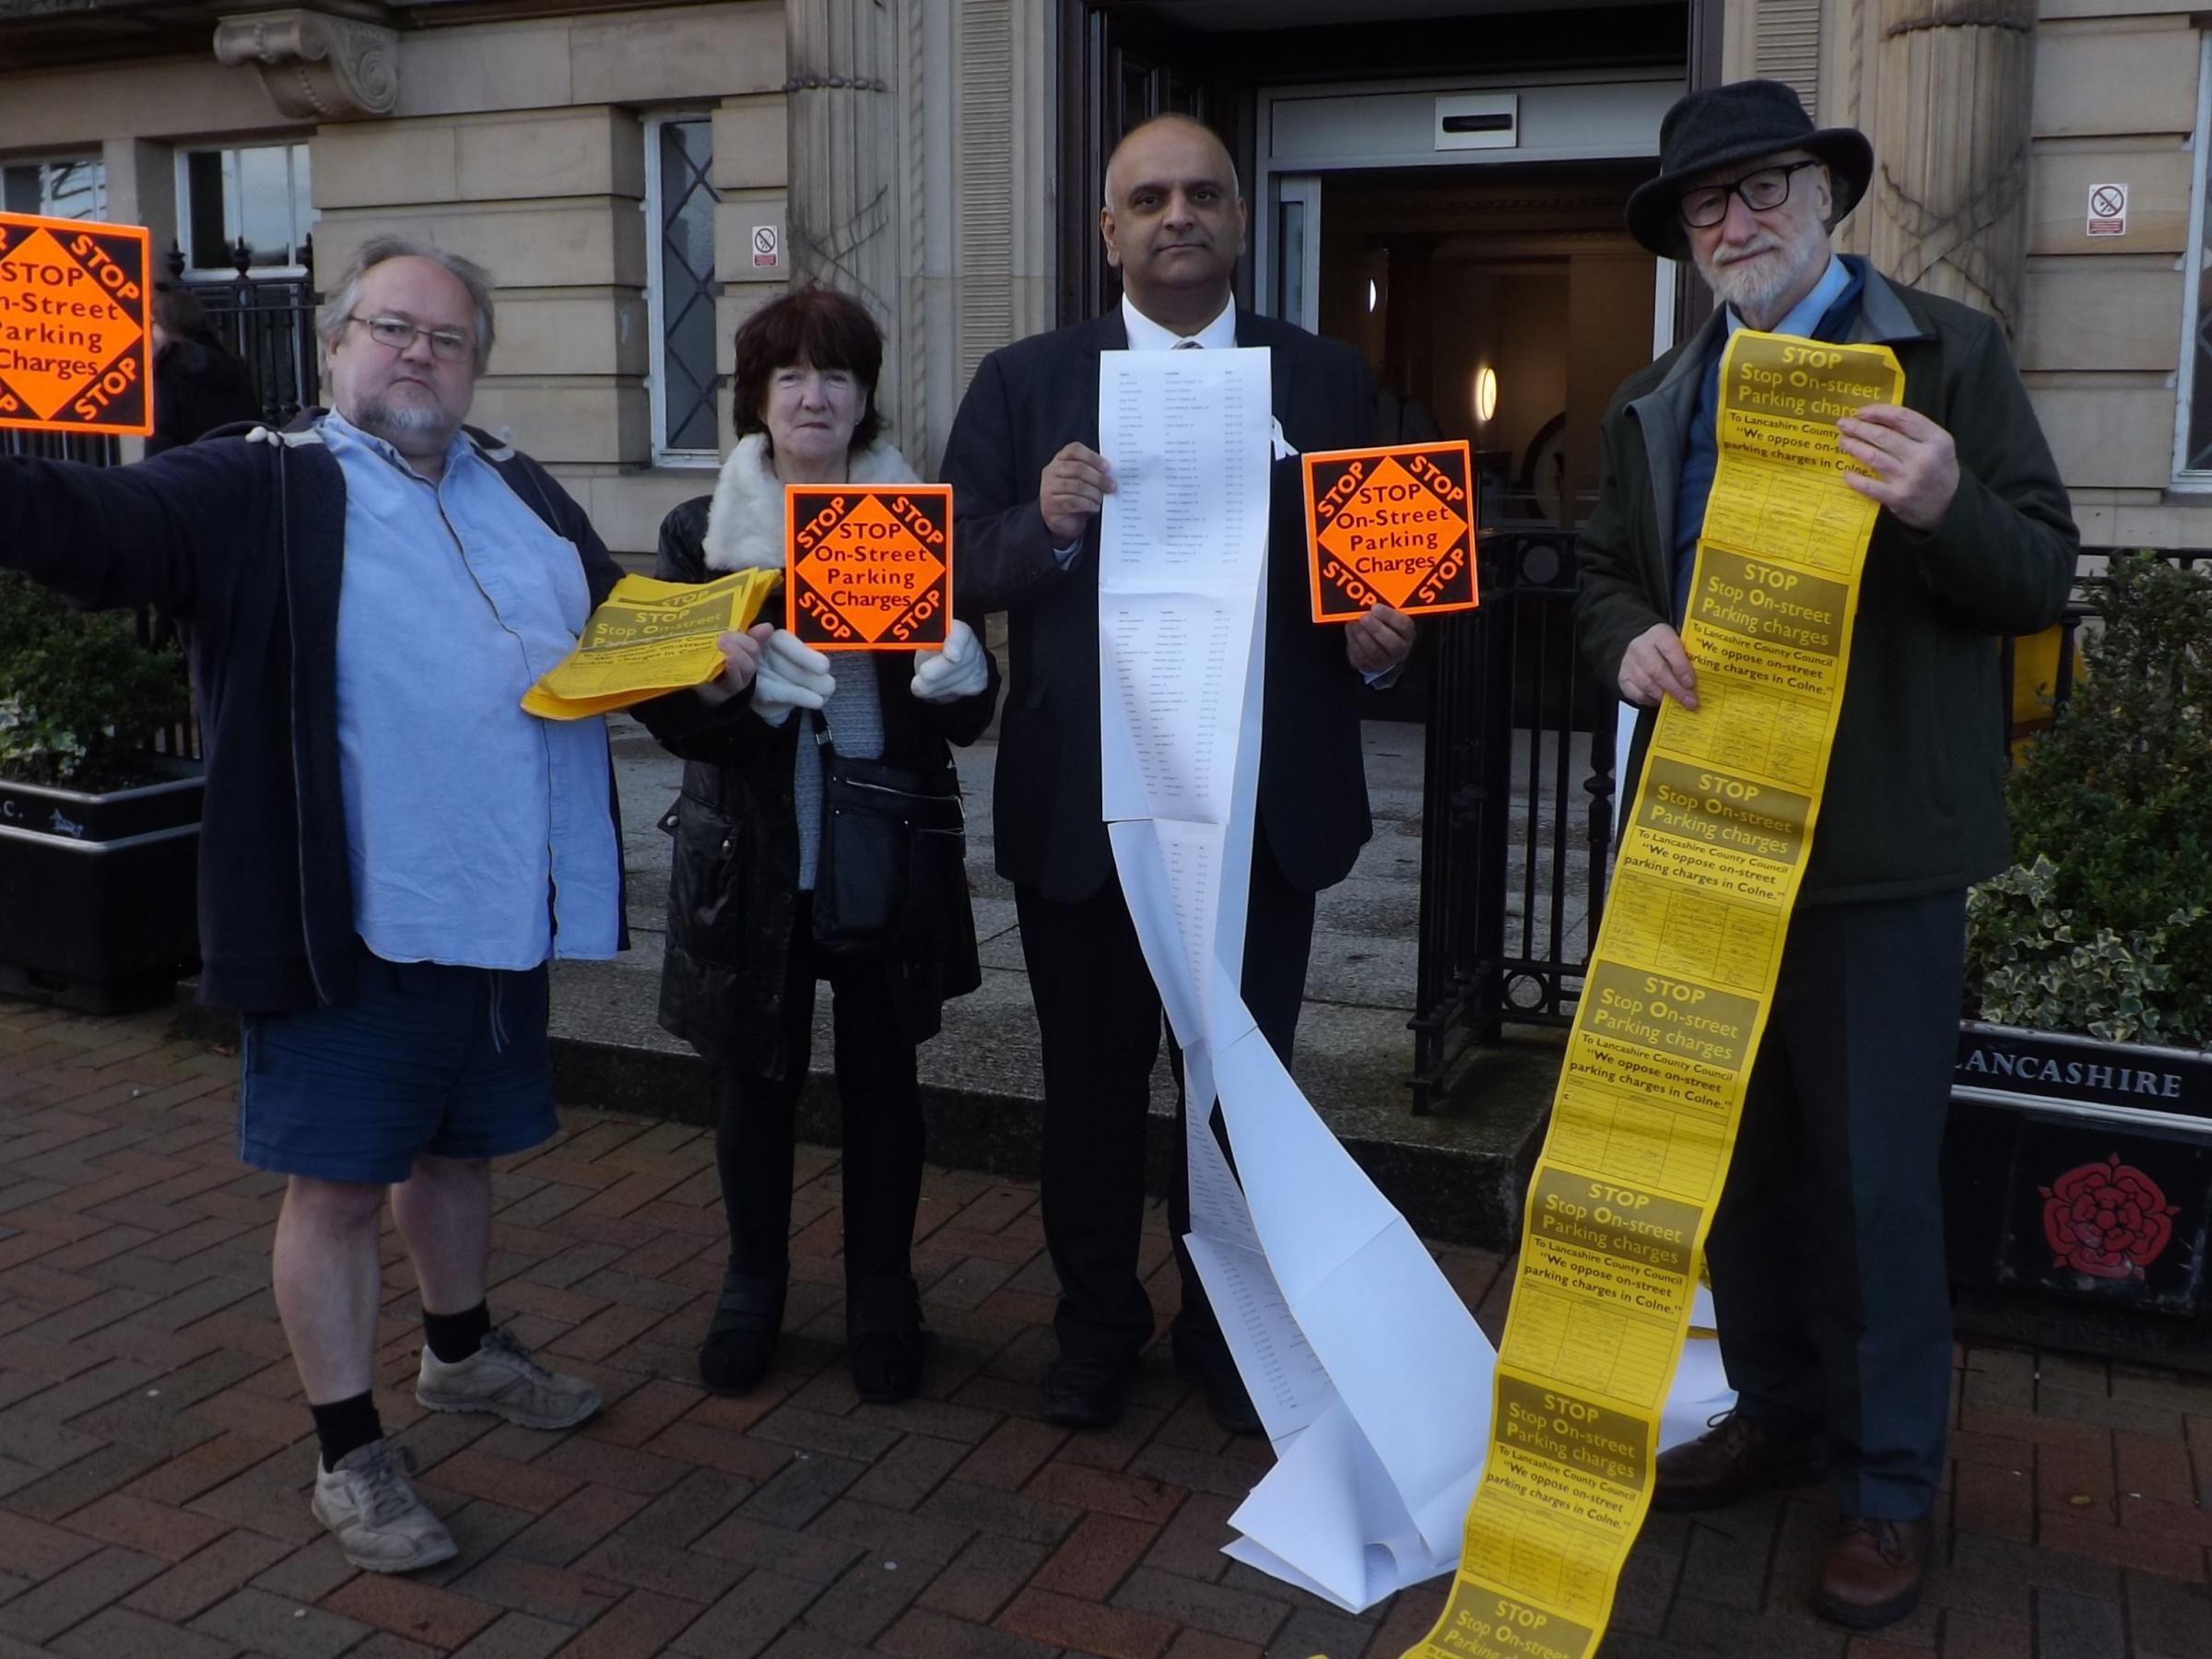 Protestors against new car parking charges in Colne and Nelson outside County Hall, Preston. From the left:County Liberal Democrat Group Leader David Whipp, Pendle Borough Councillor Dorothy Lord, County Labour Group Leader Azhar Ali, and Pendle Councillo